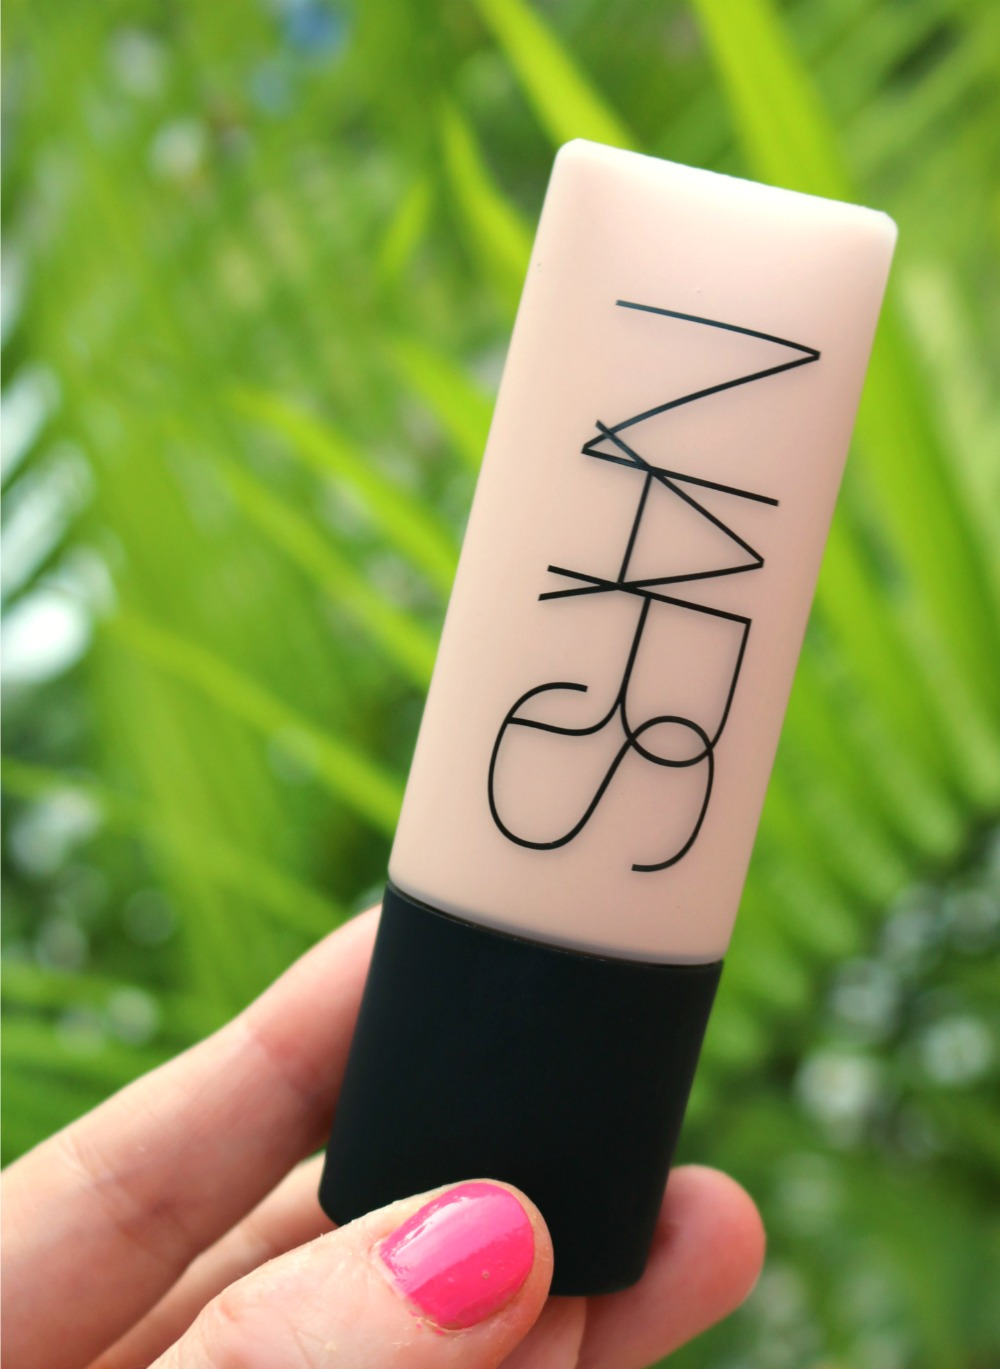 NARS Soft Matte Complete Foundation Review I DreaminLace.com #NARS #BeautyBlog